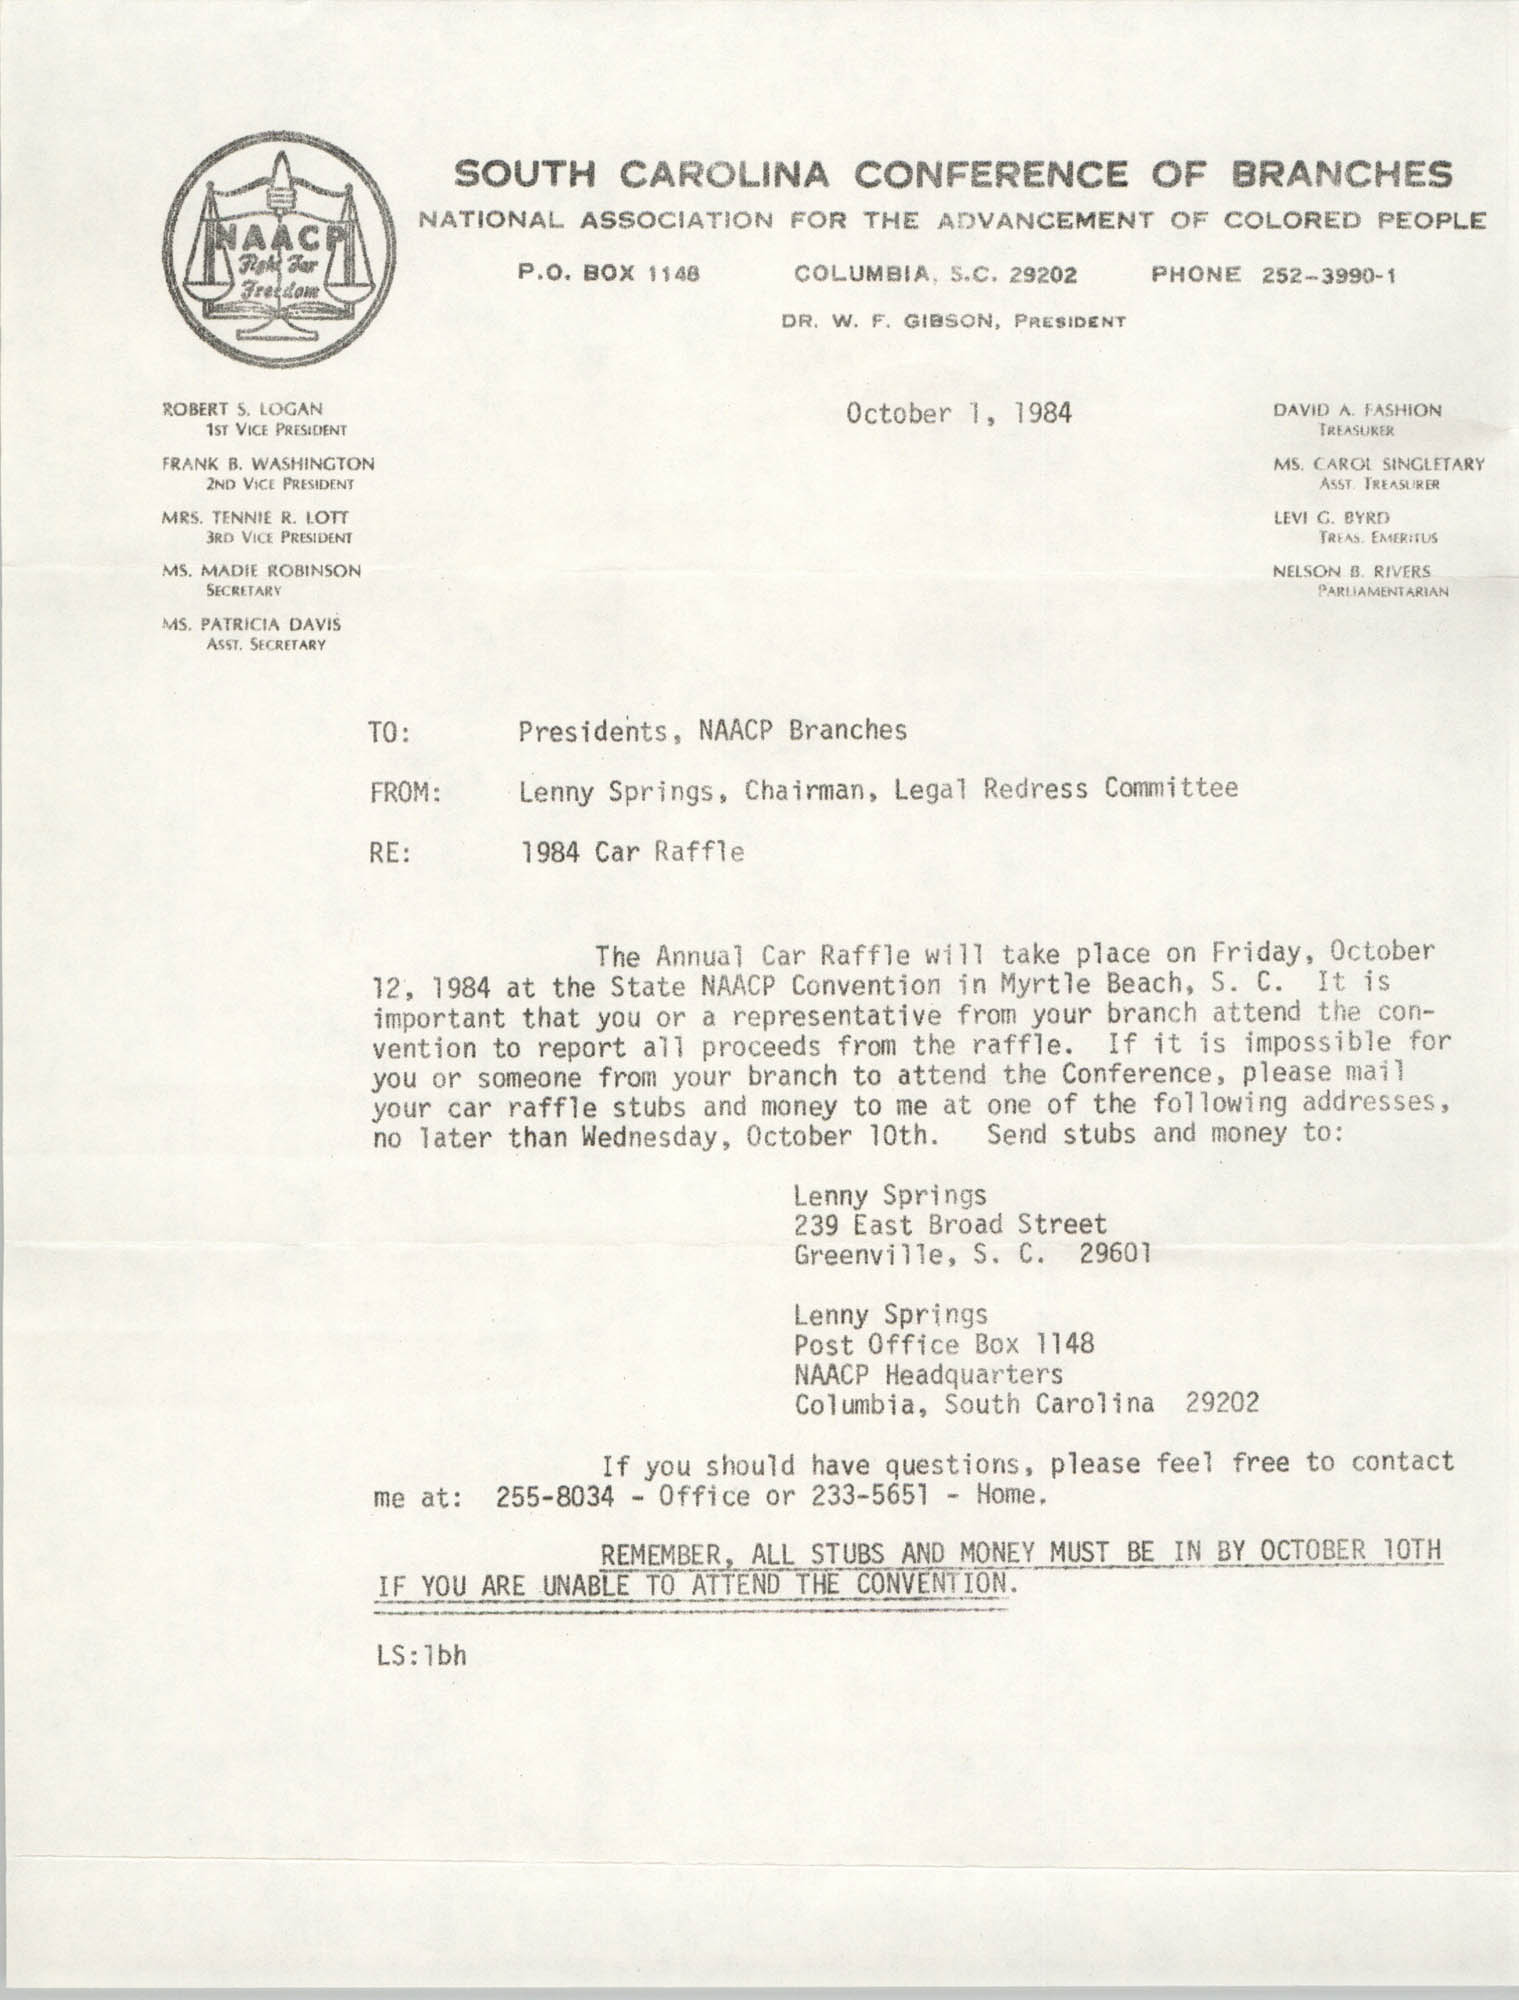 South Carolina Conference of Branches of the NAACP Memorandum, October 1, 1984